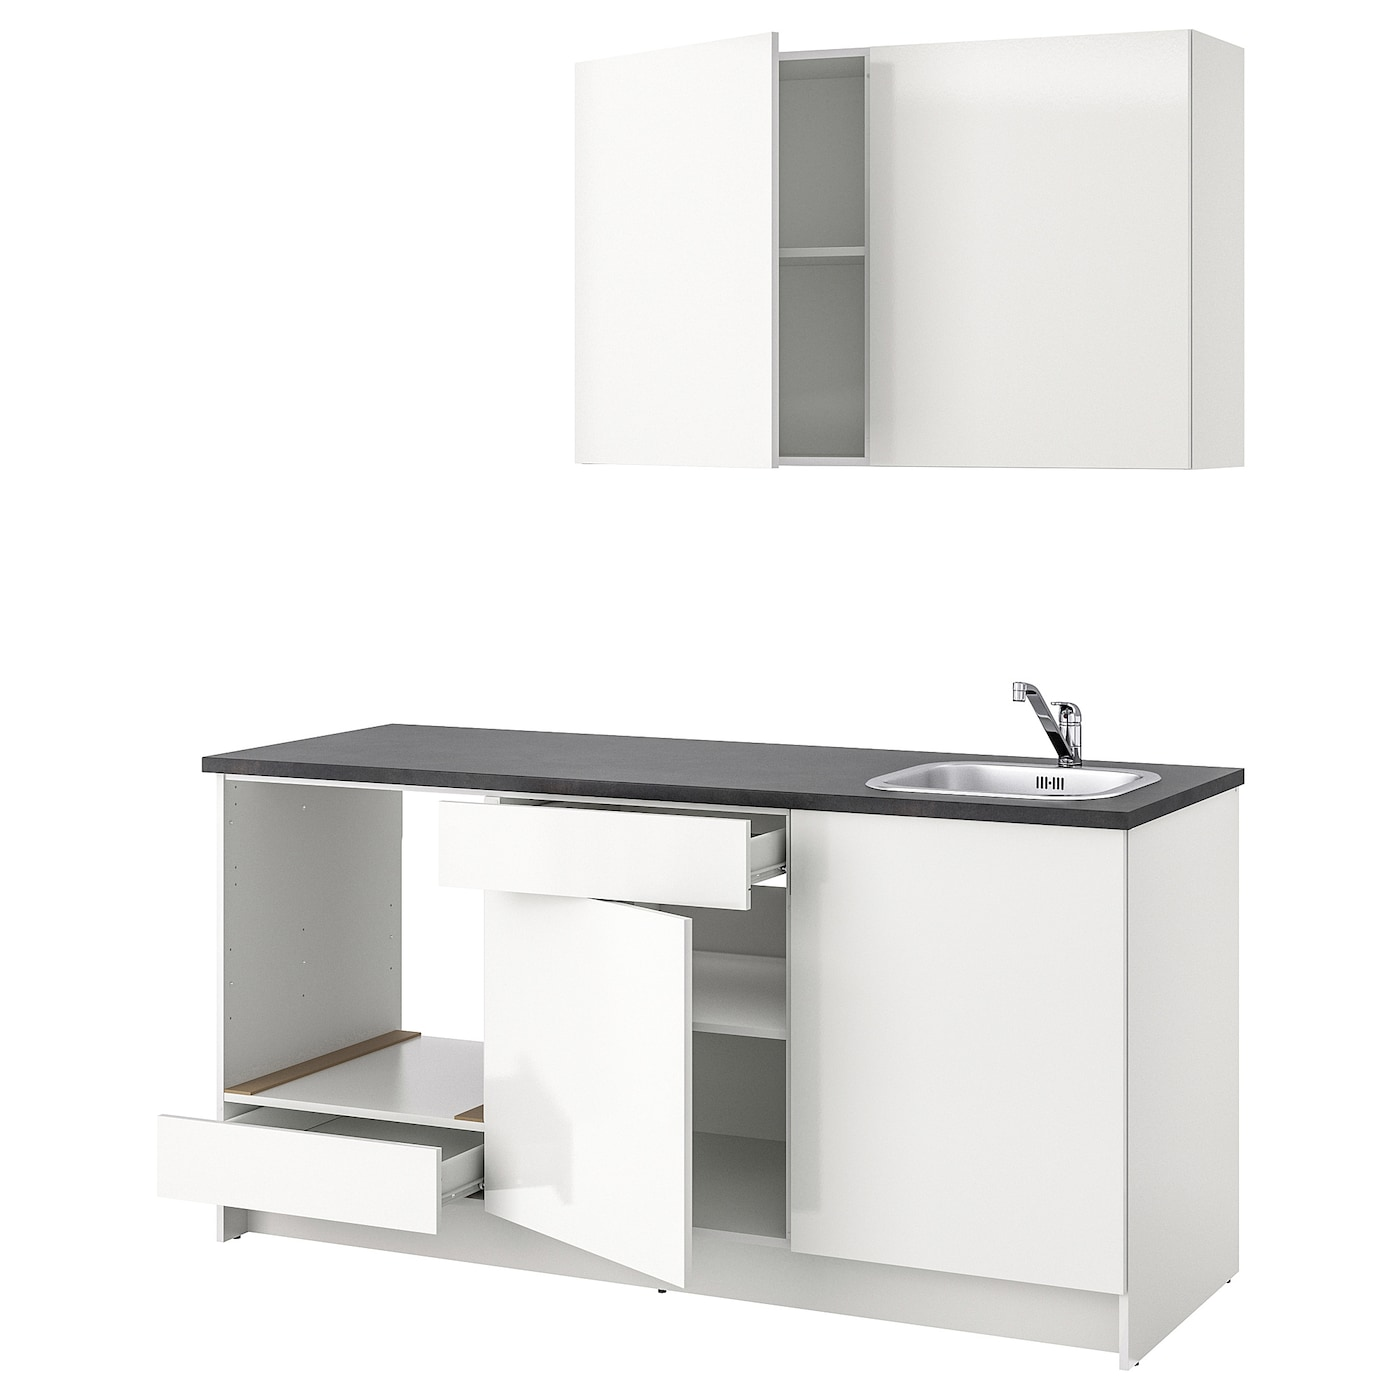 Ikea Kitchen Modules